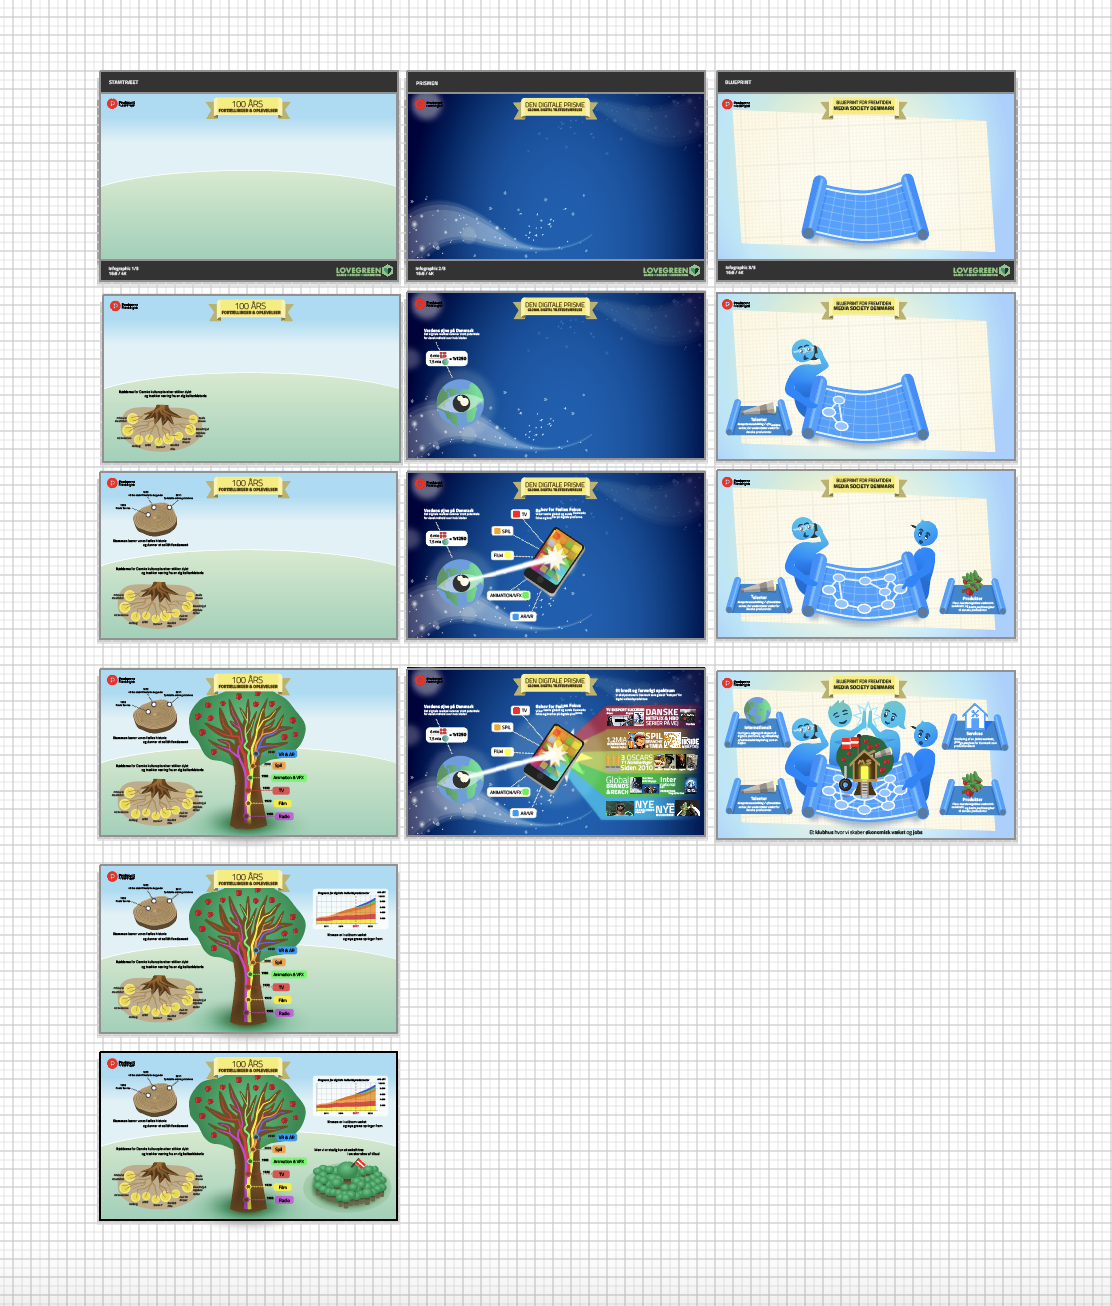 Progression & step-by-step animation of each concept and supporting core message - with supporting facts as infographics.